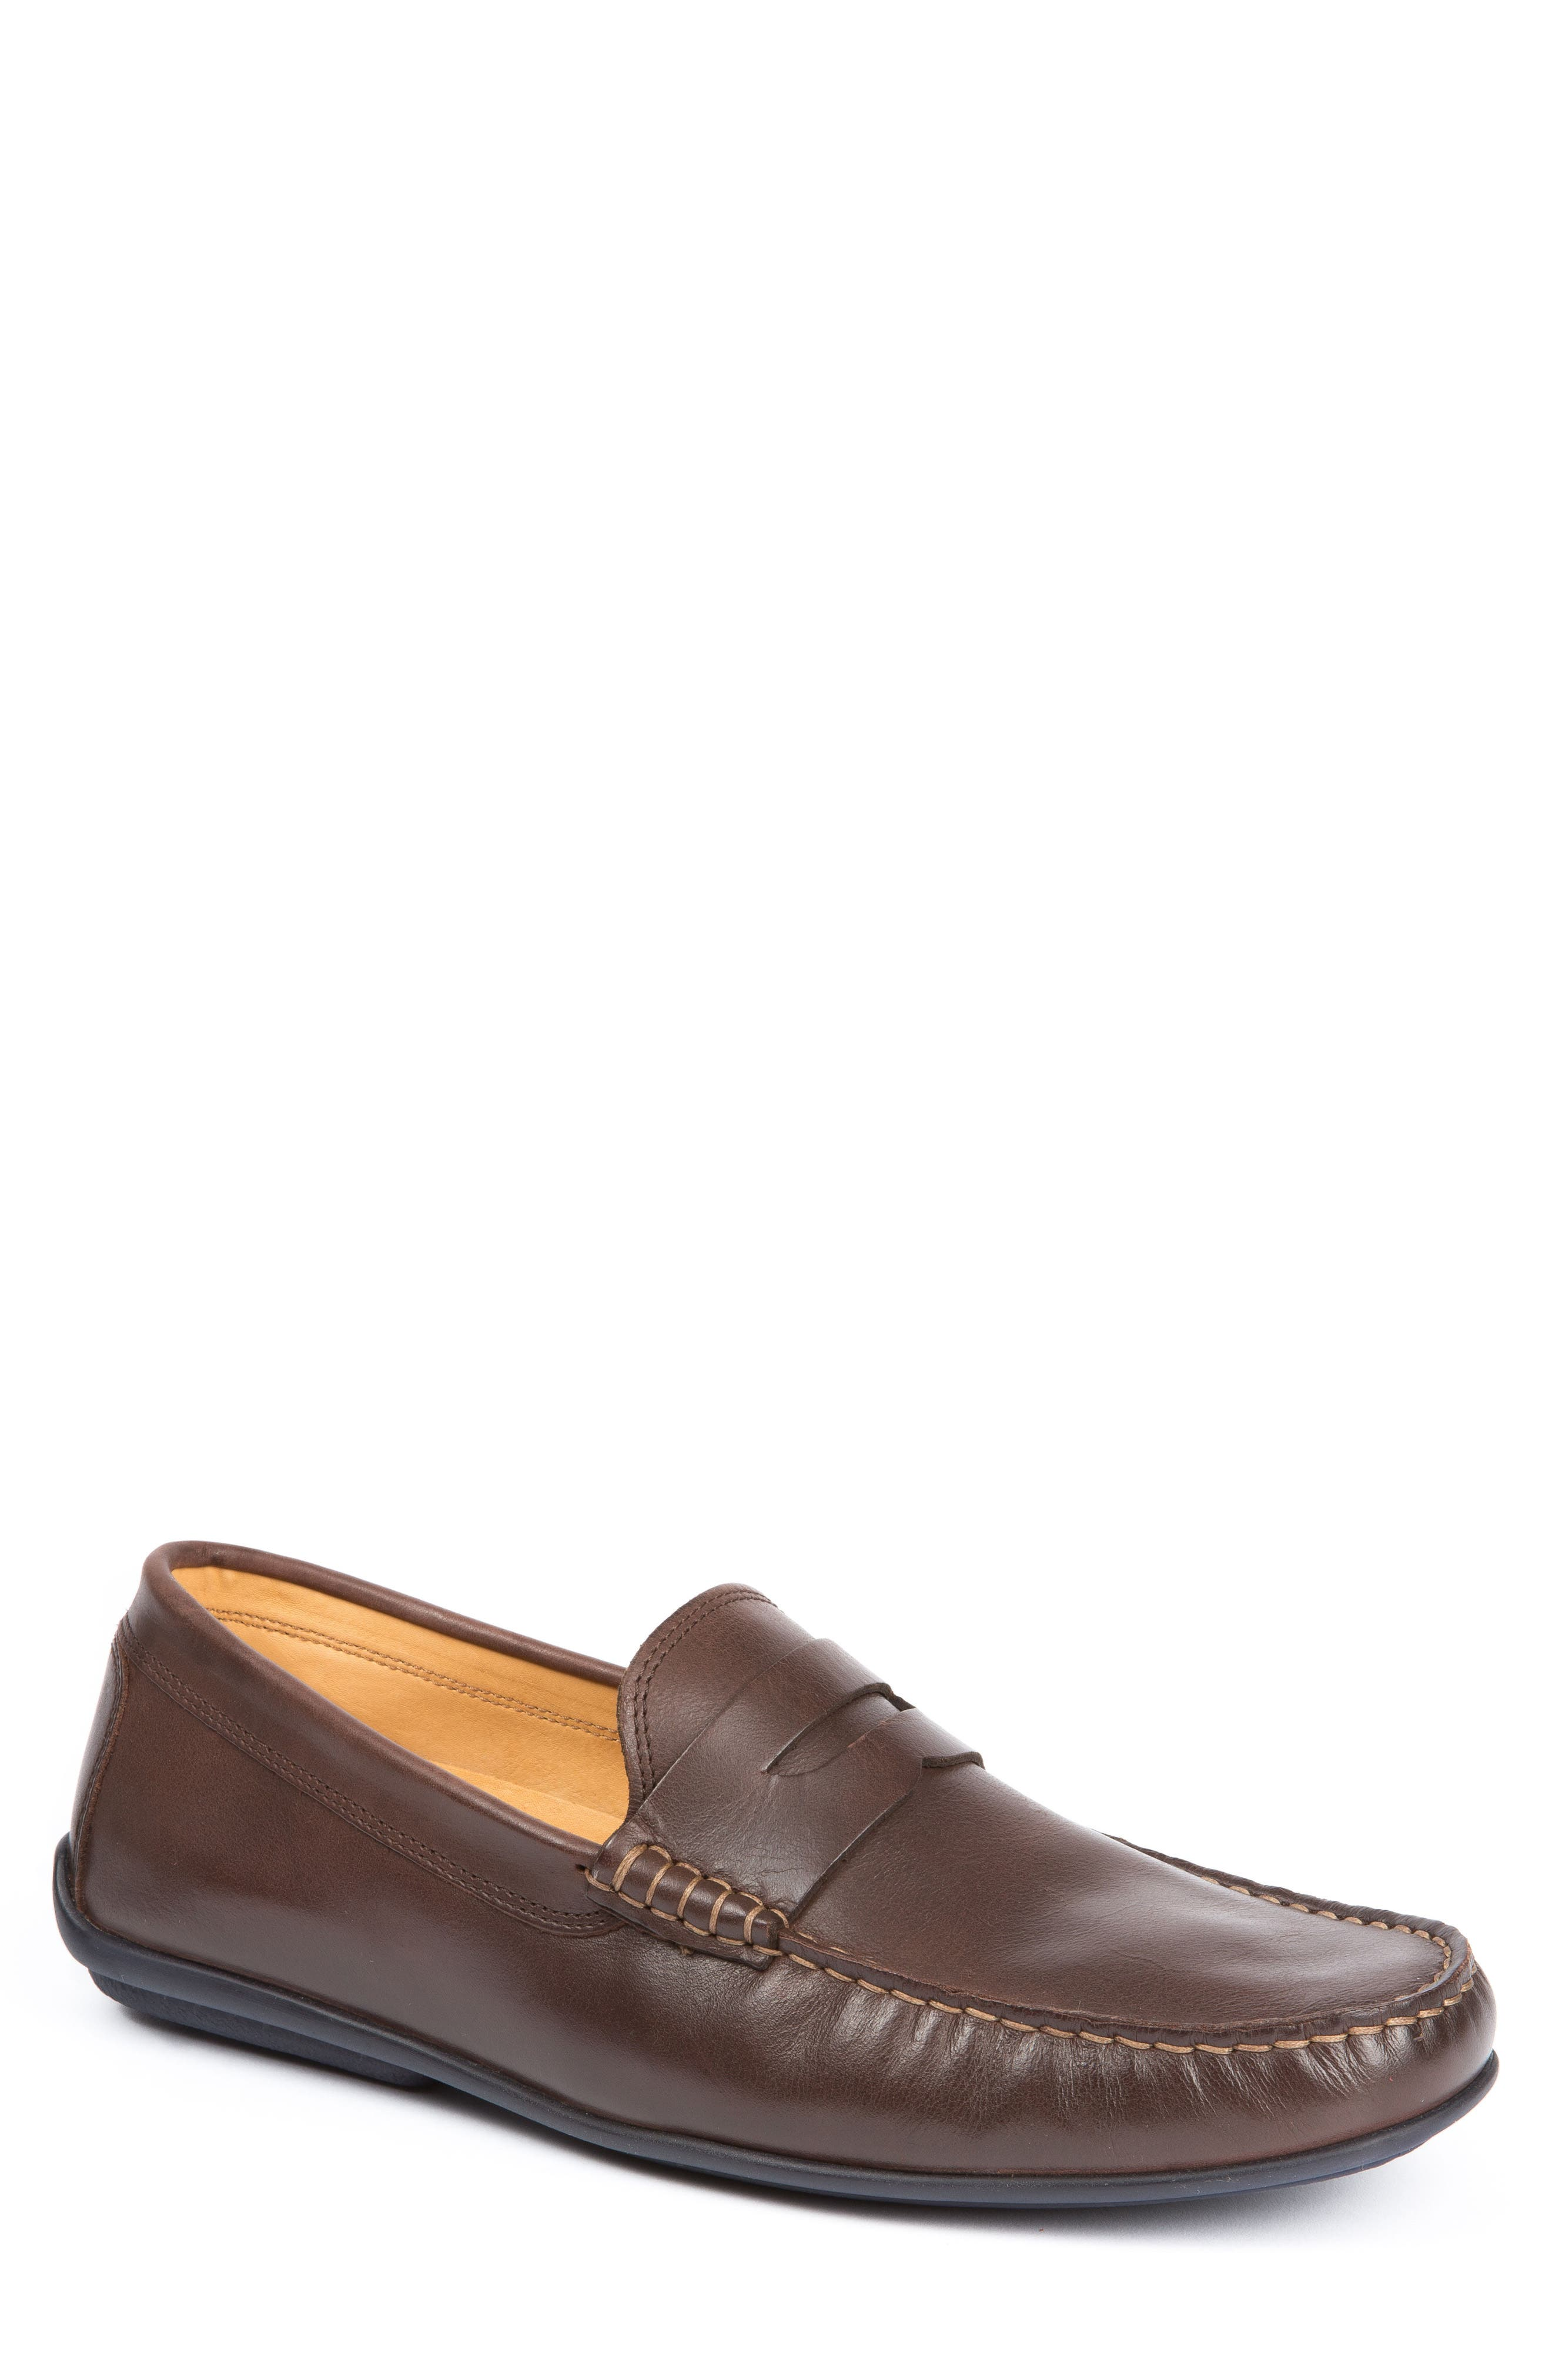 'Strattons' Driving Shoe,                         Main,                         color, BROWN LEATHER/ NAVY